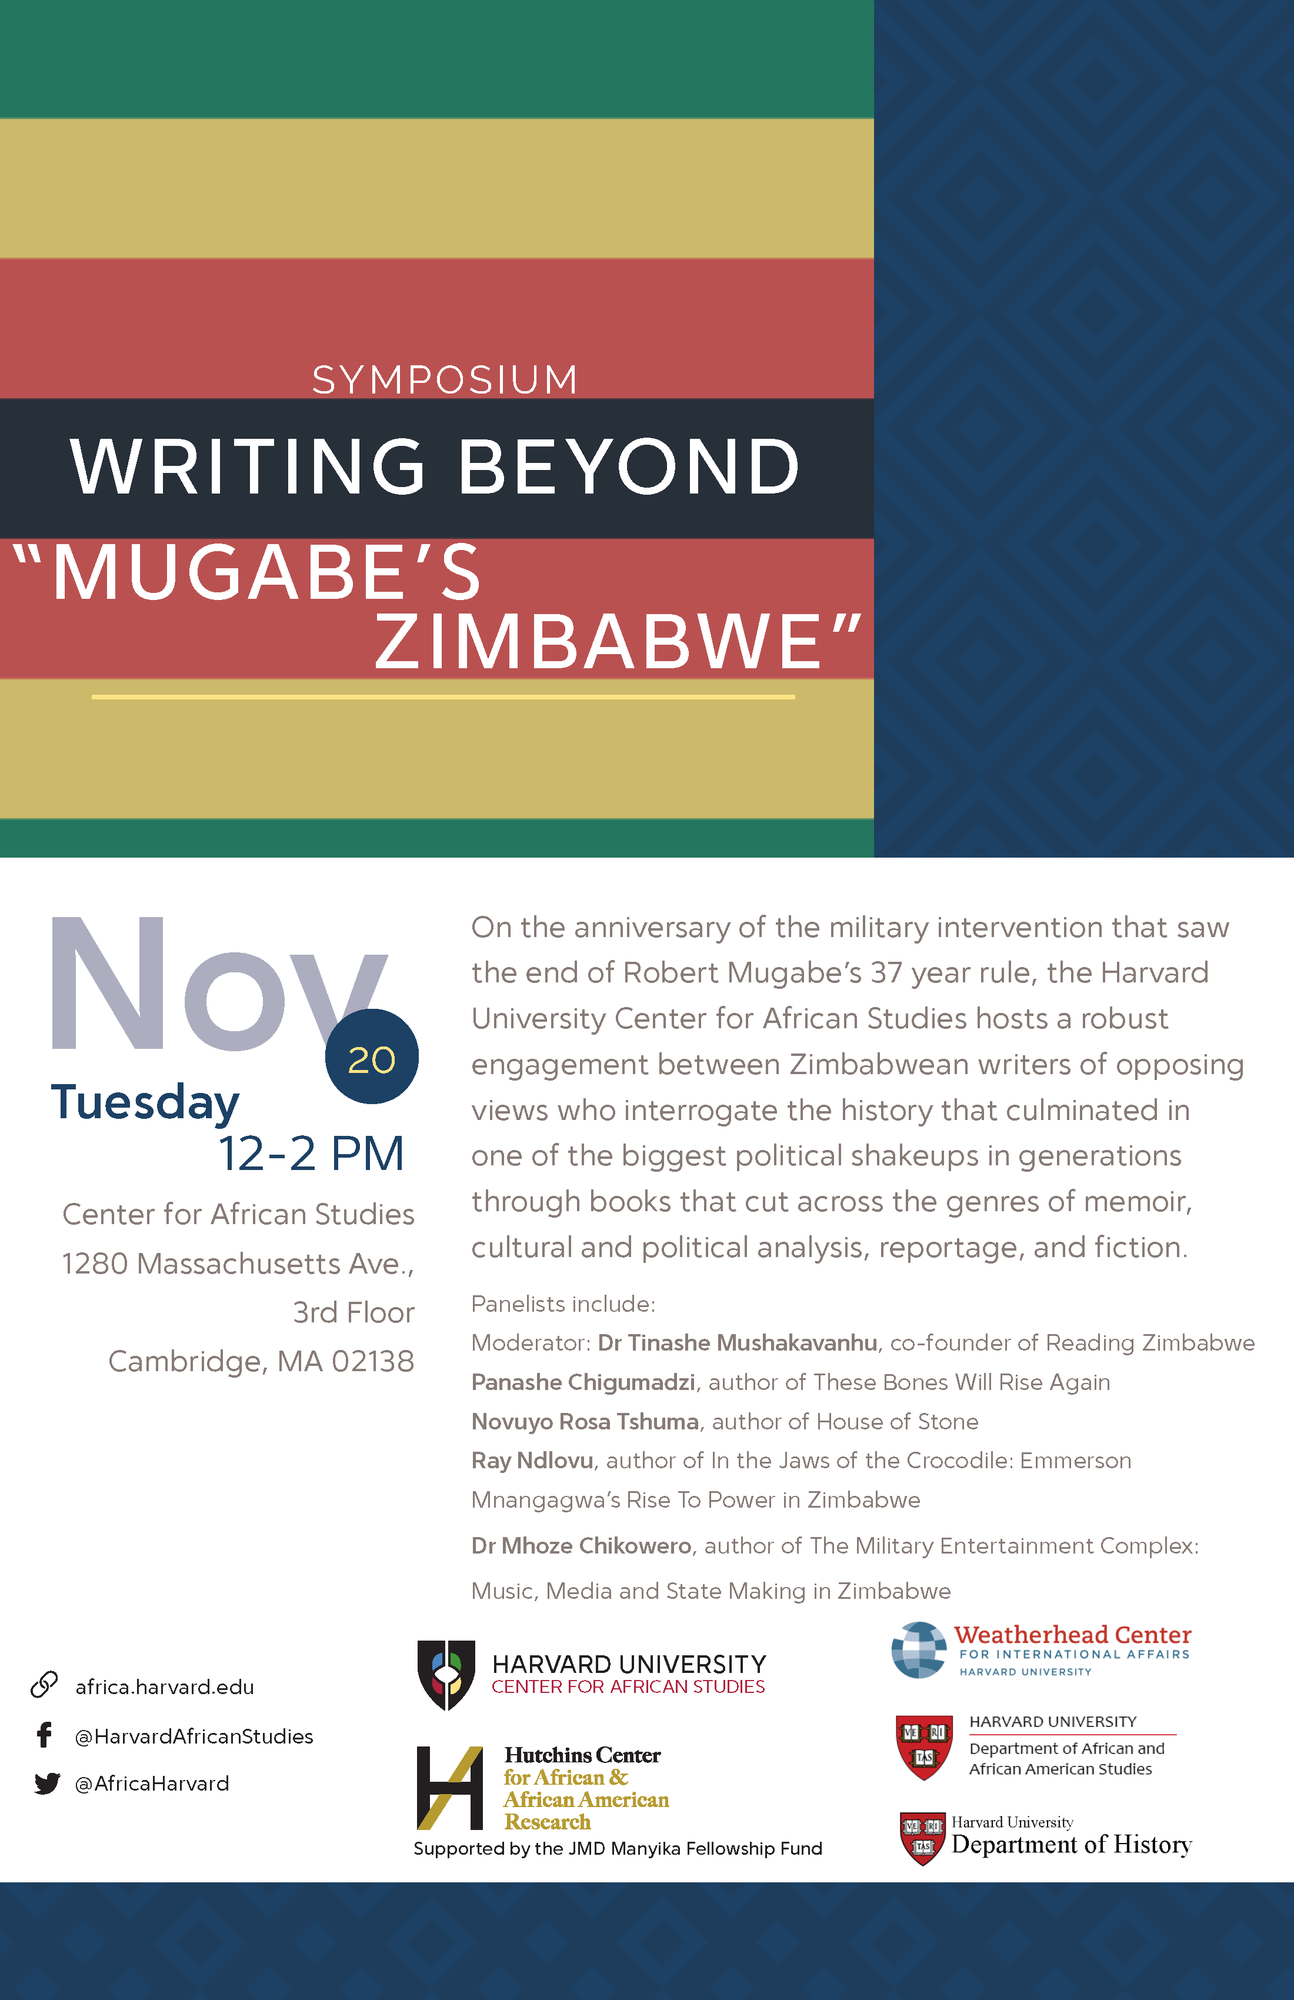 Writing Beyond Mugabe's Zimbabwe Poster